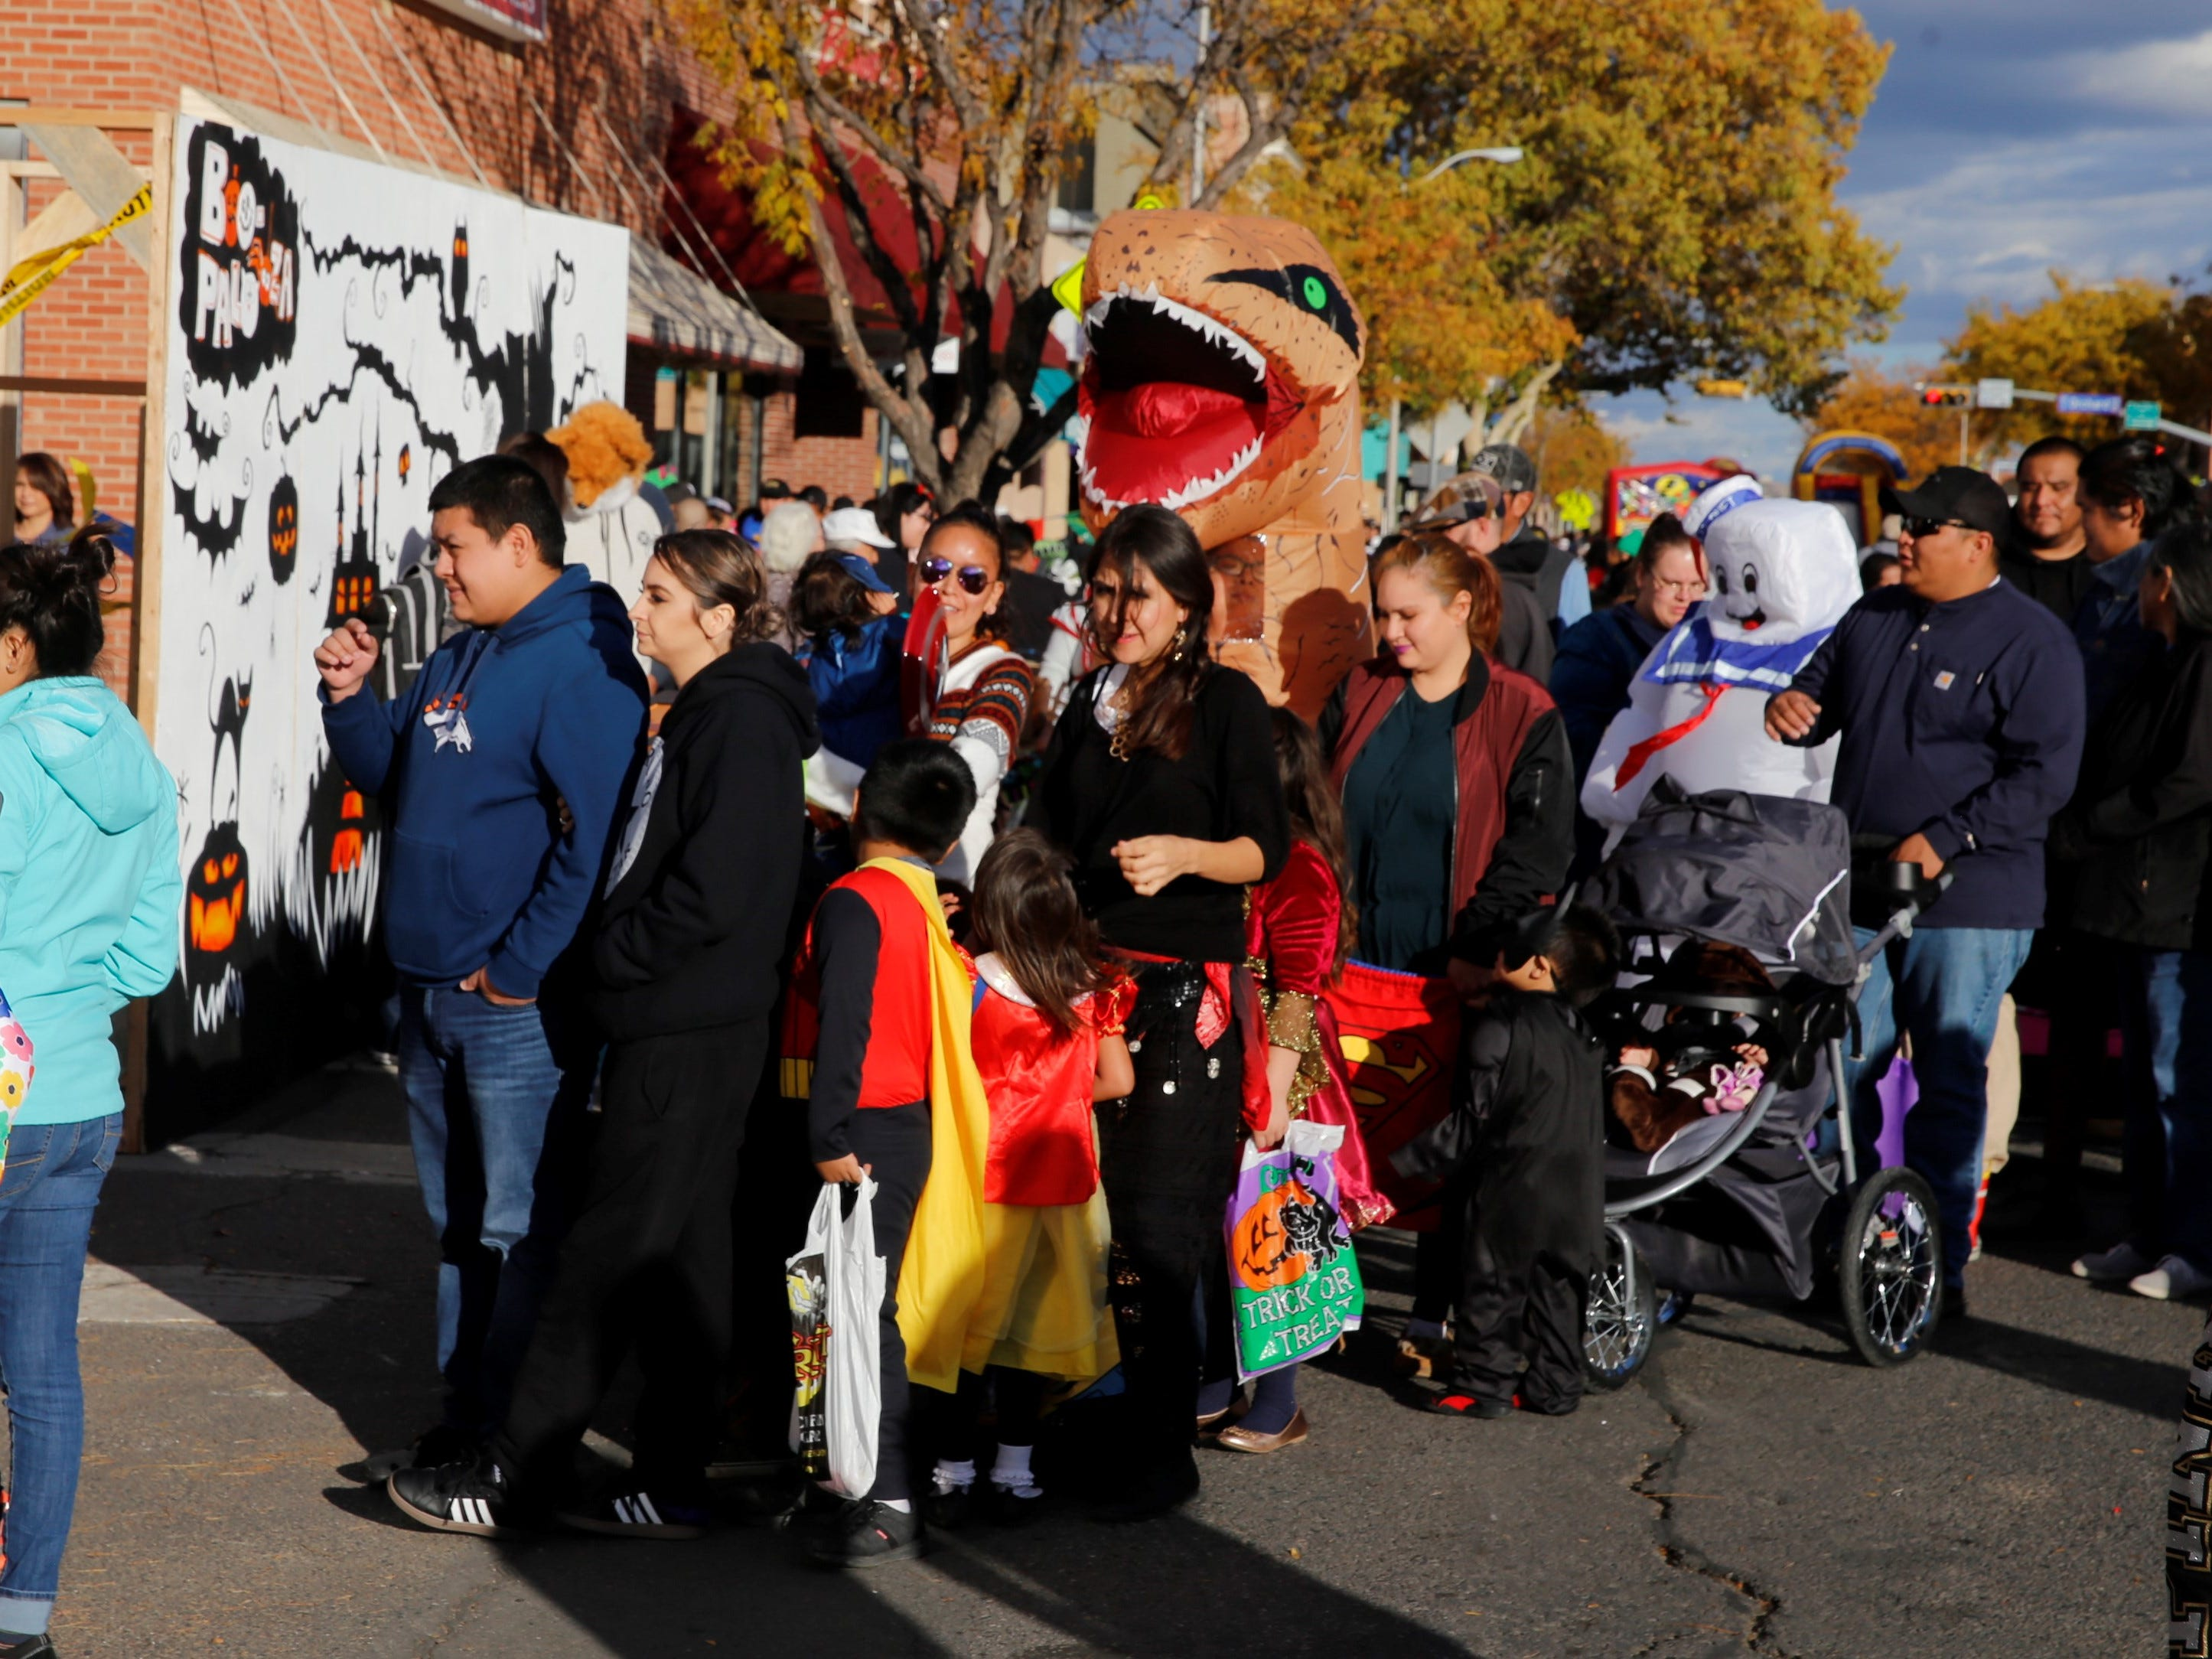 Trick or Treaters wait in line to get candy on Main Street during BooPalooza Wednesday in Farmington.